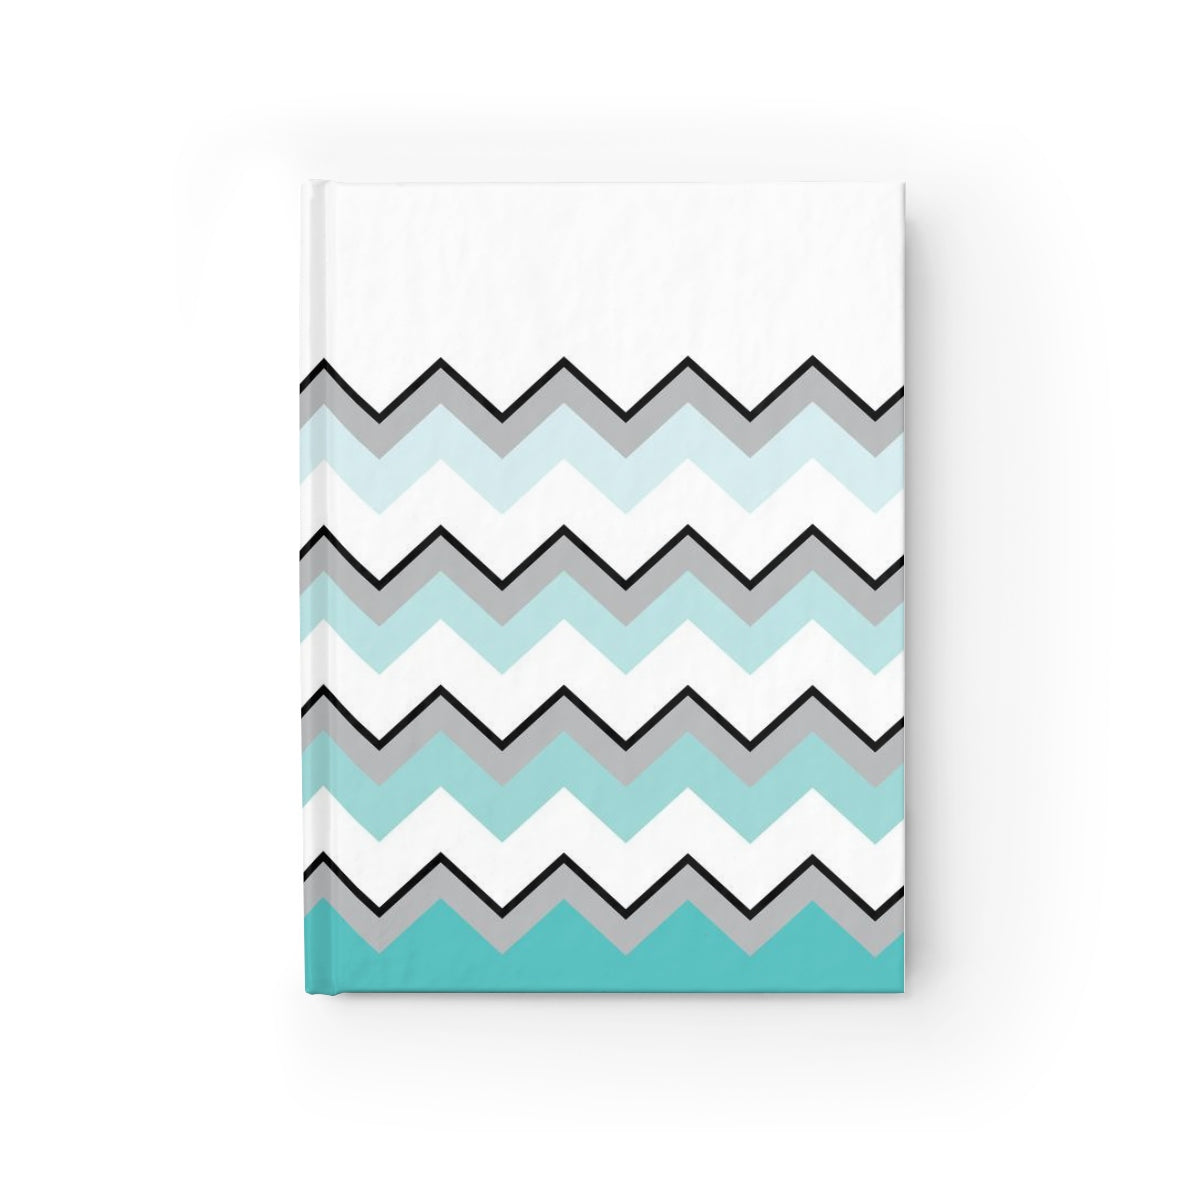 Ombre Teal Chevron Journal - Ruled Line